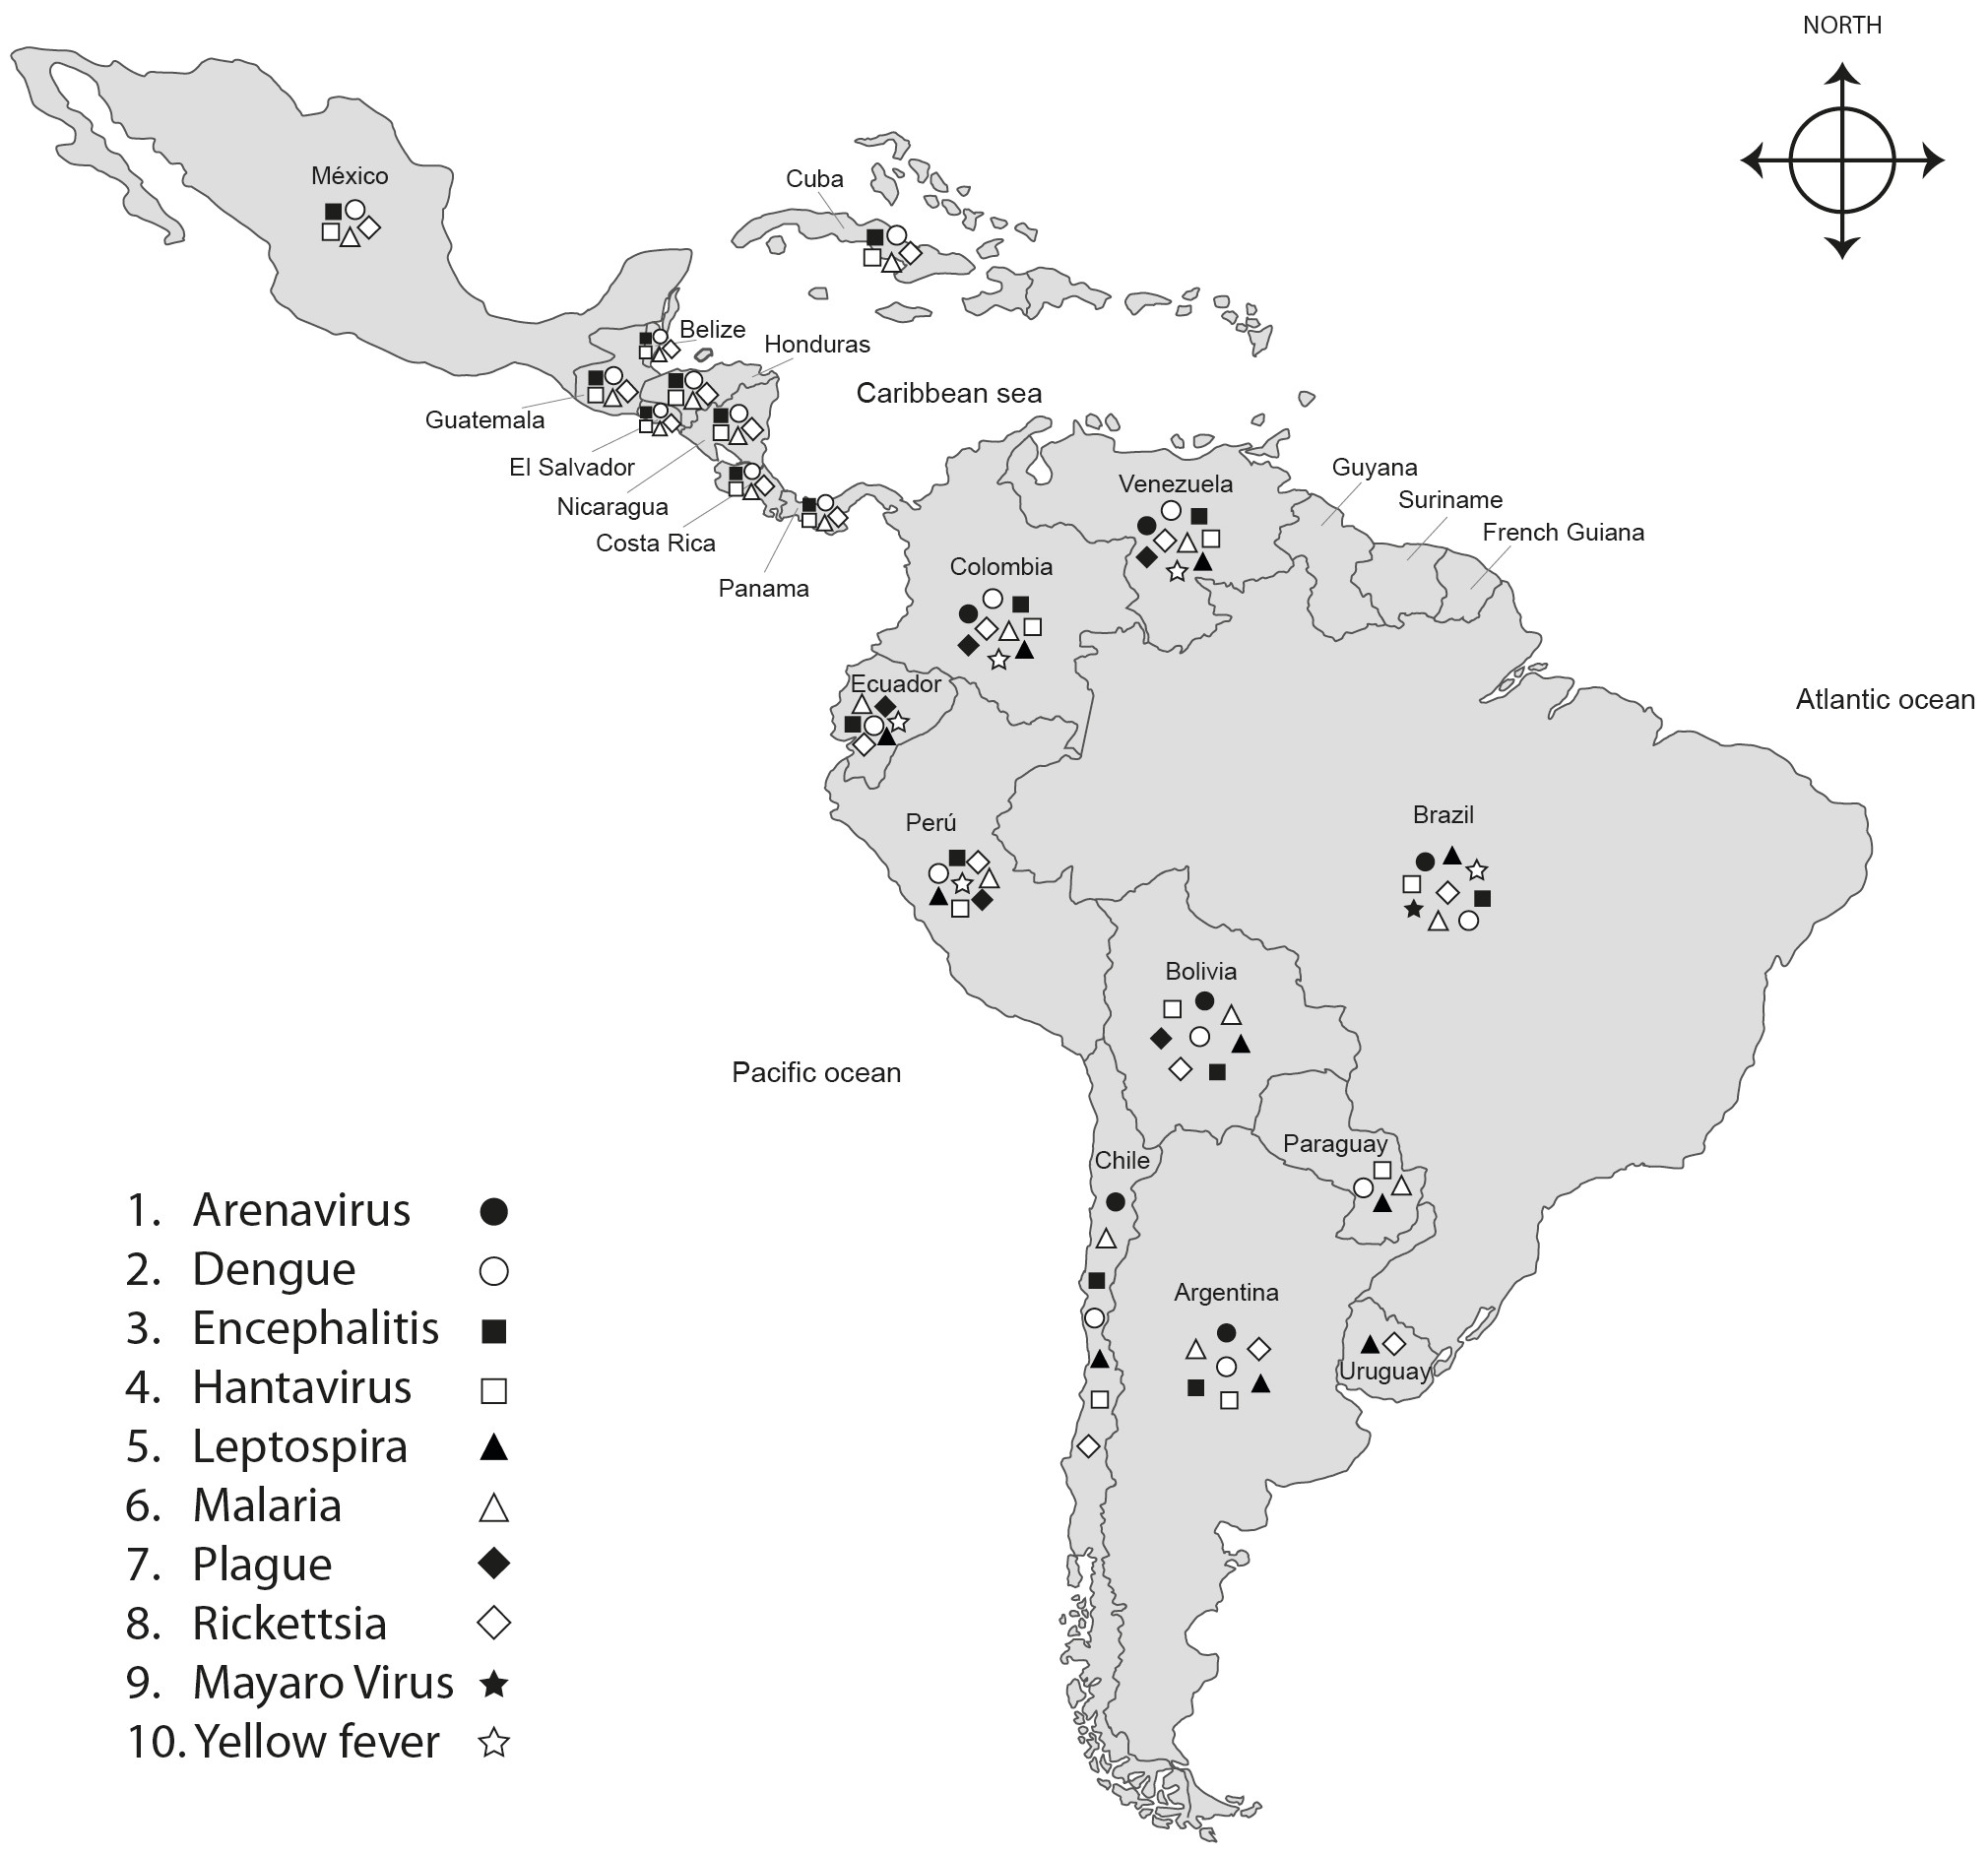 Haemorrhagic Fevers Transmitted by Vectors in the Neotropics ...